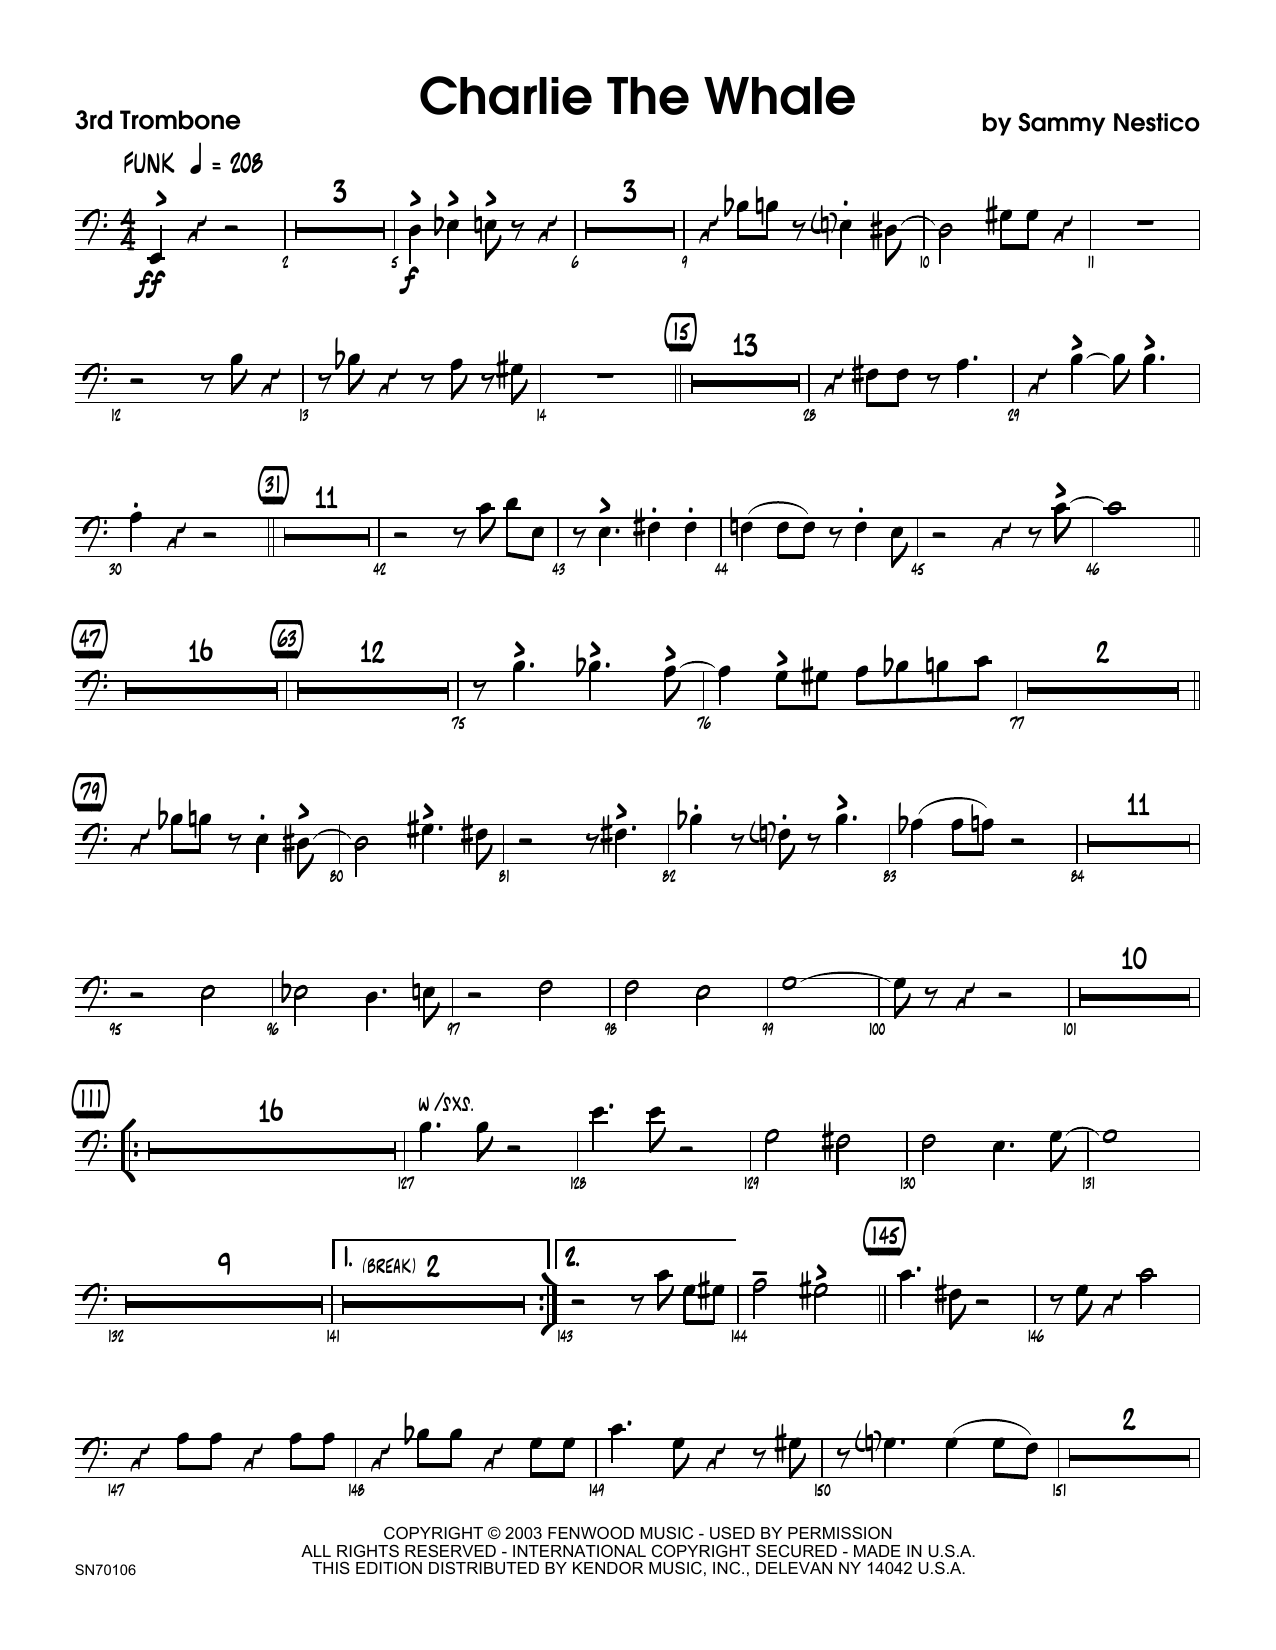 Charlie The Whale - 3rd Trombone Sheet Music